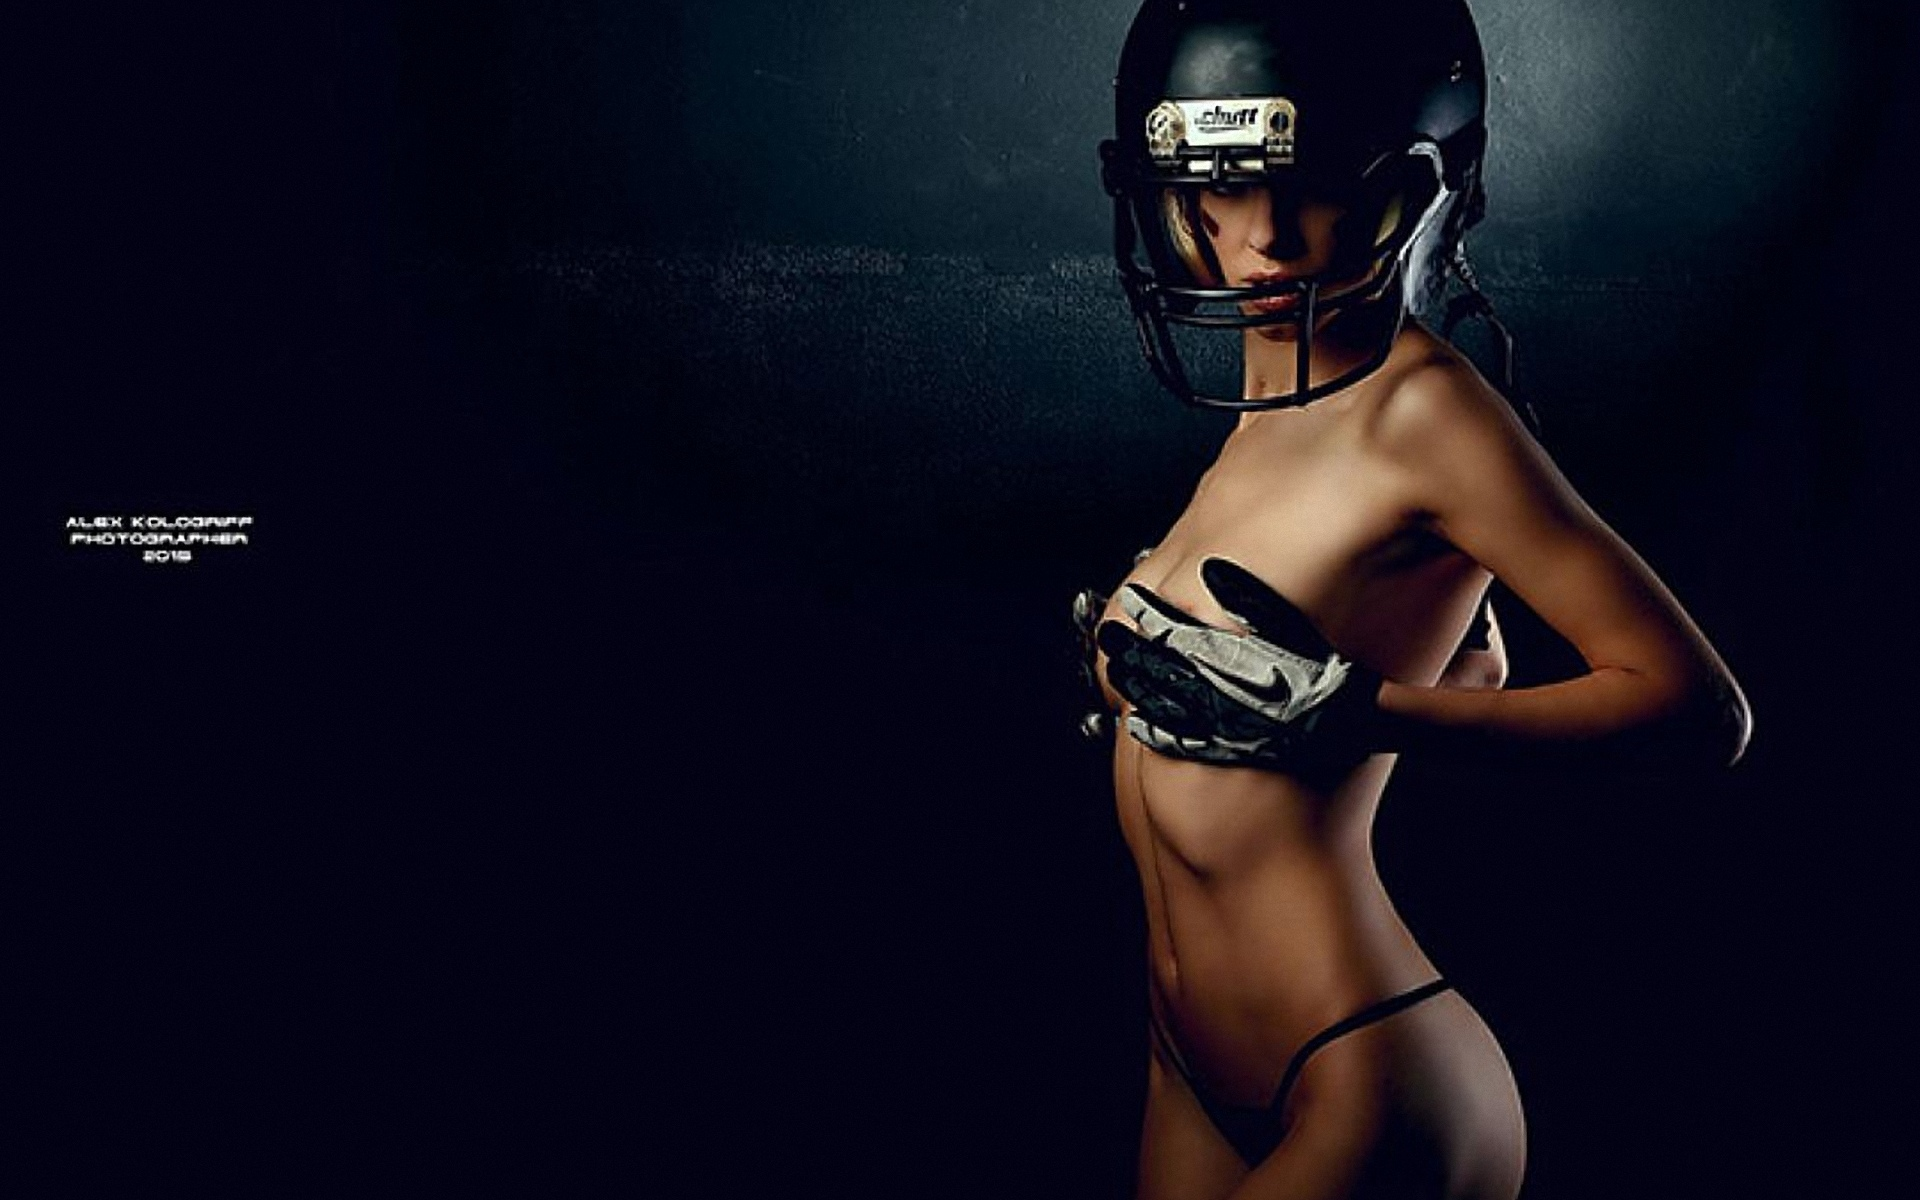 Naked girl with a football helmet on — pic 3